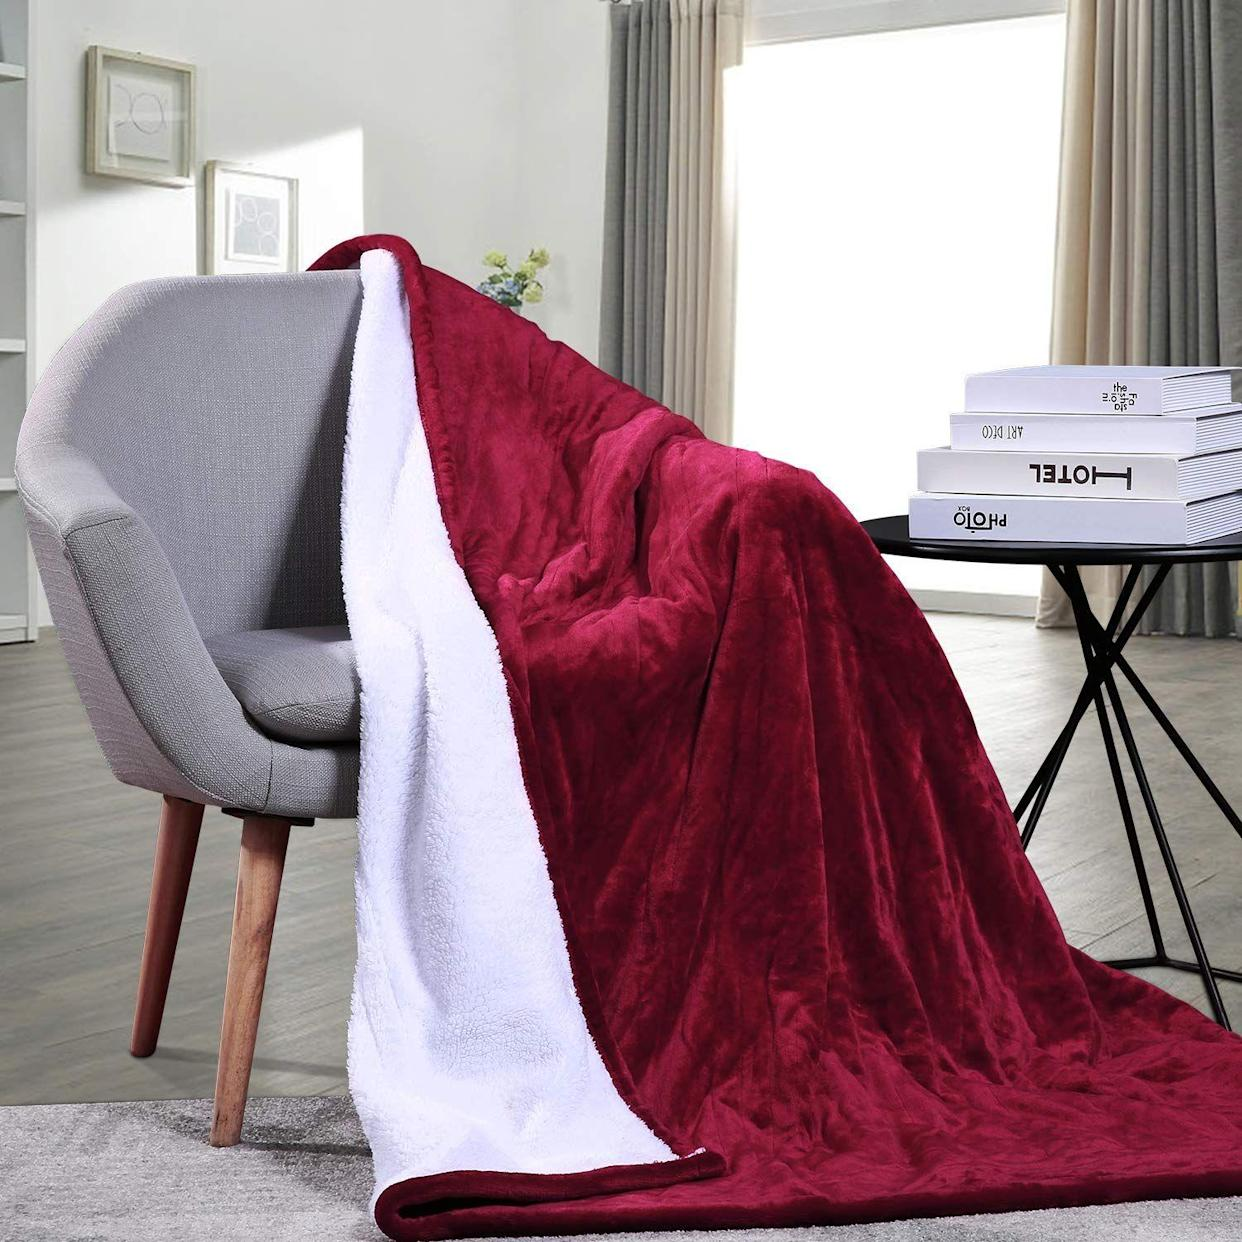 "<p><strong>The Gift: Heated Blanket</strong><br>Recipe for a fire V-Day: Stay in, order Seamless, and get cozy with your main squeeze under this super-plush heated sherpa blanket.</p> <br> <br> <strong>MaxKare</strong> Heated Throw Blanket, $59.99, available at <a href=""https://www.amazon.com/MaxKare-Electric-Fast-Heating-Reversible-Heat-Level/dp/B07BWD5F21/ref=sr_1_4"" rel=""nofollow noopener"" target=""_blank"" data-ylk=""slk:Amazon"" class=""link rapid-noclick-resp"">Amazon</a>"